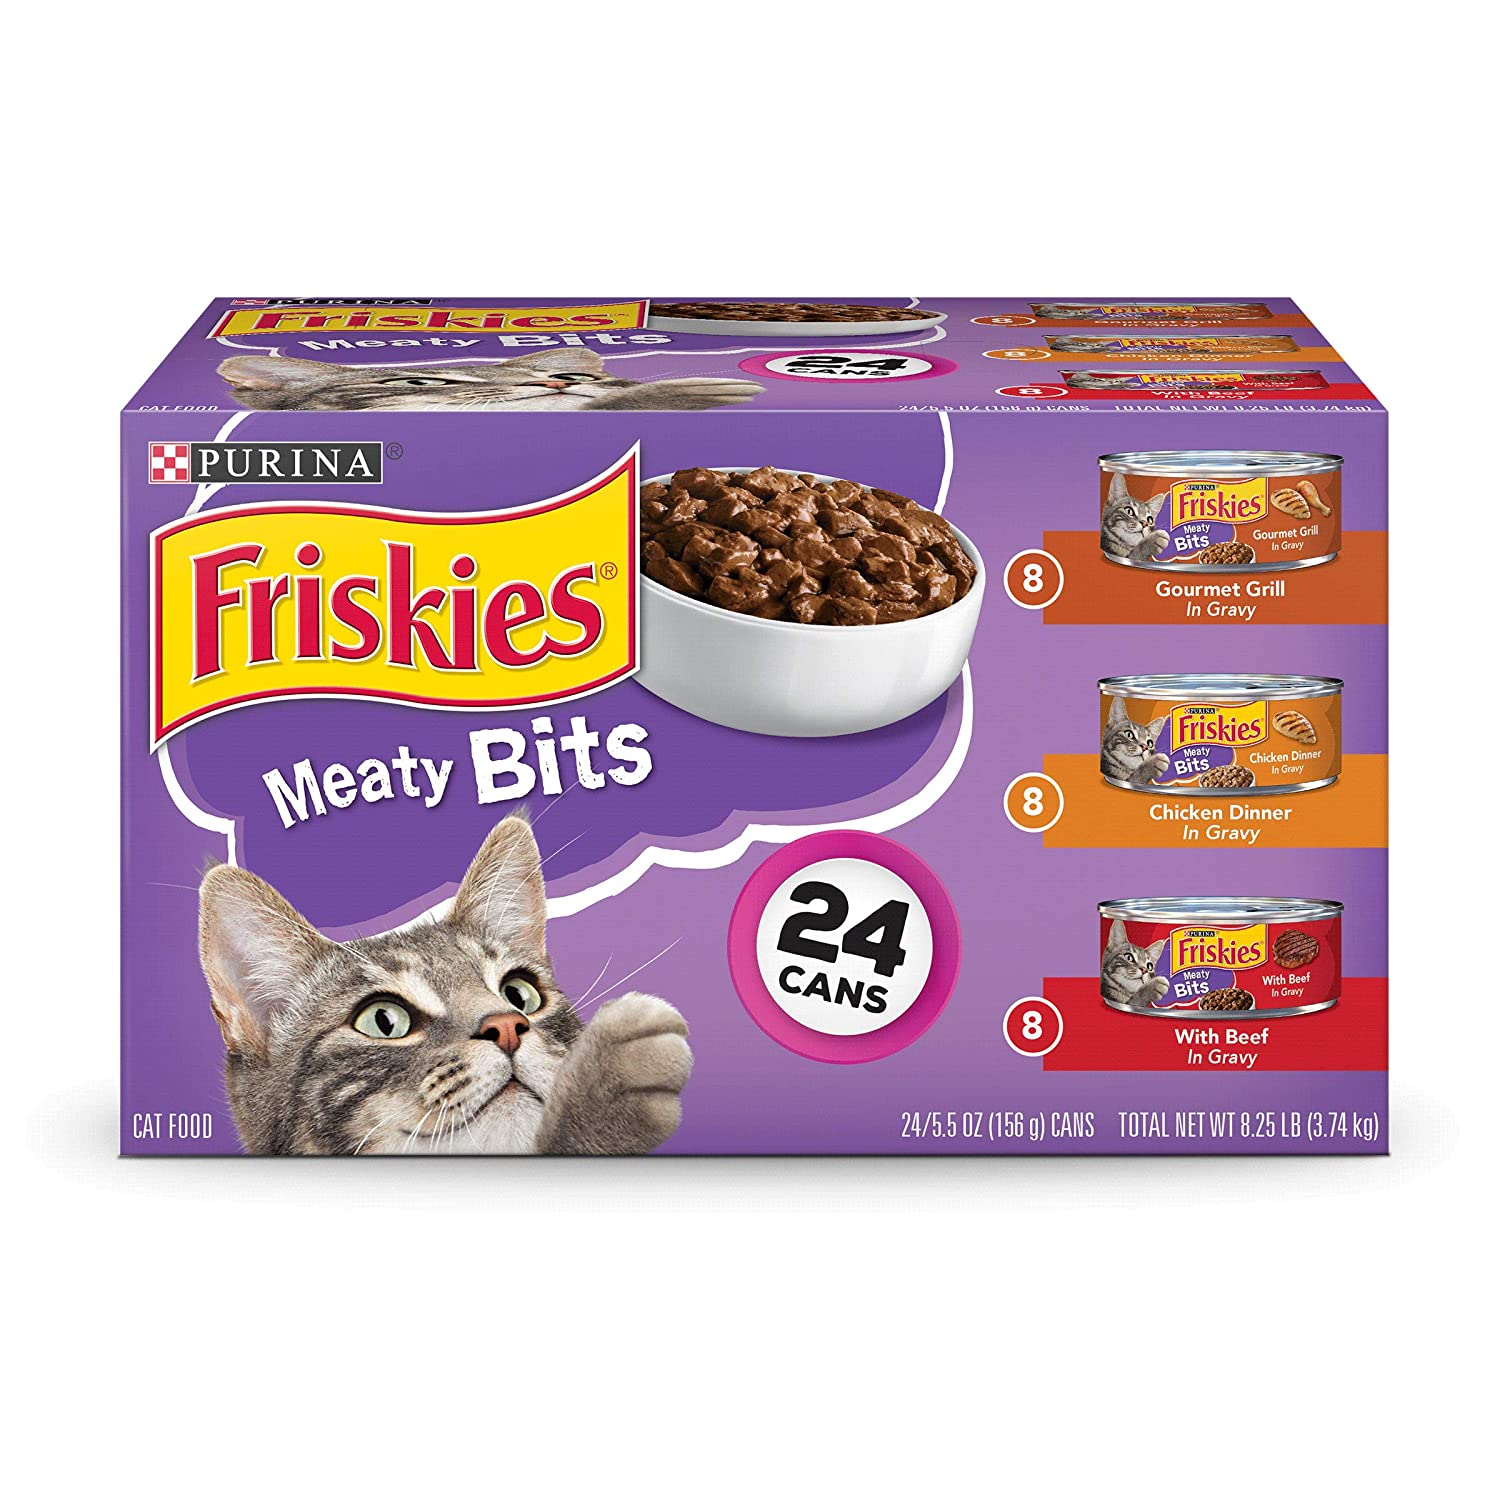 Friskies Meaty Bits Variety Pack (24 5.5-oz cans)